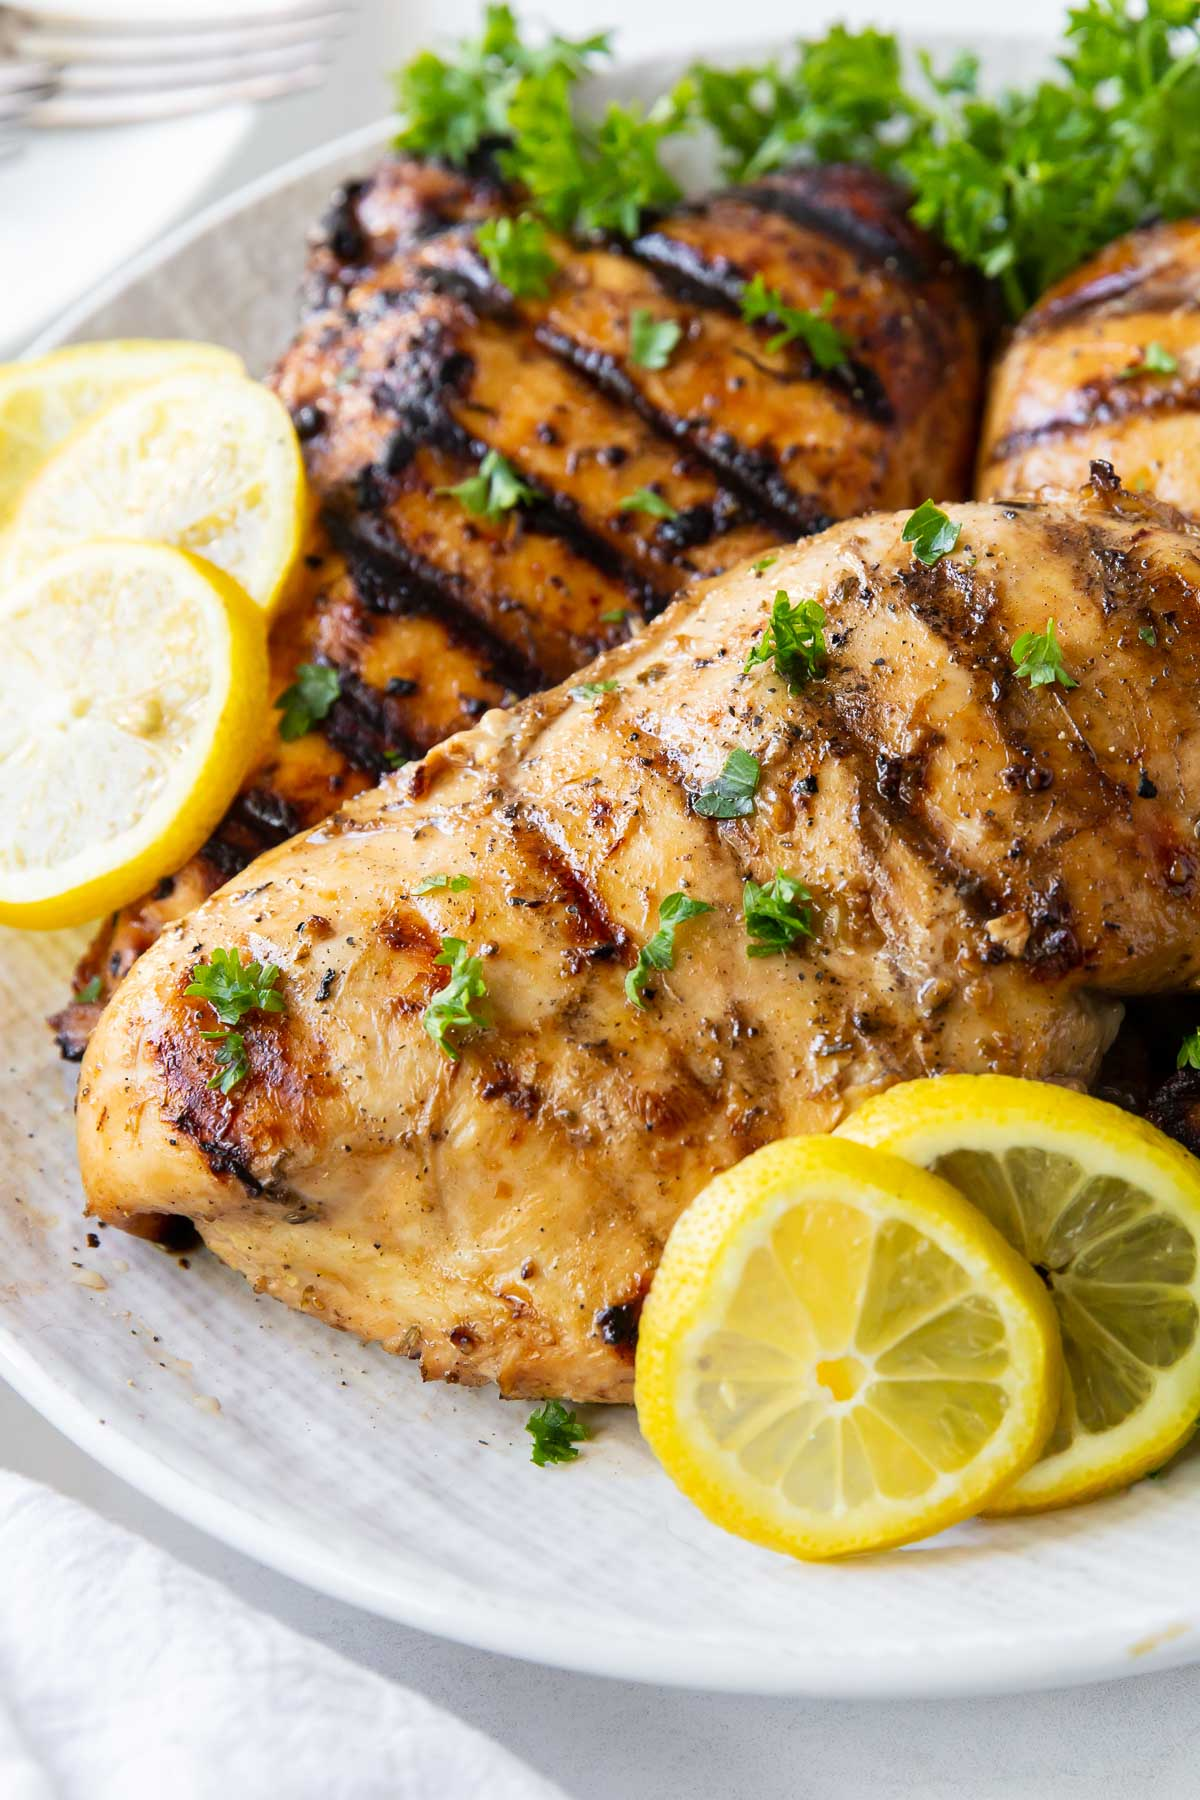 close up of grilled marinated chicken breasts on a plate garnished with parsley and lemon slices